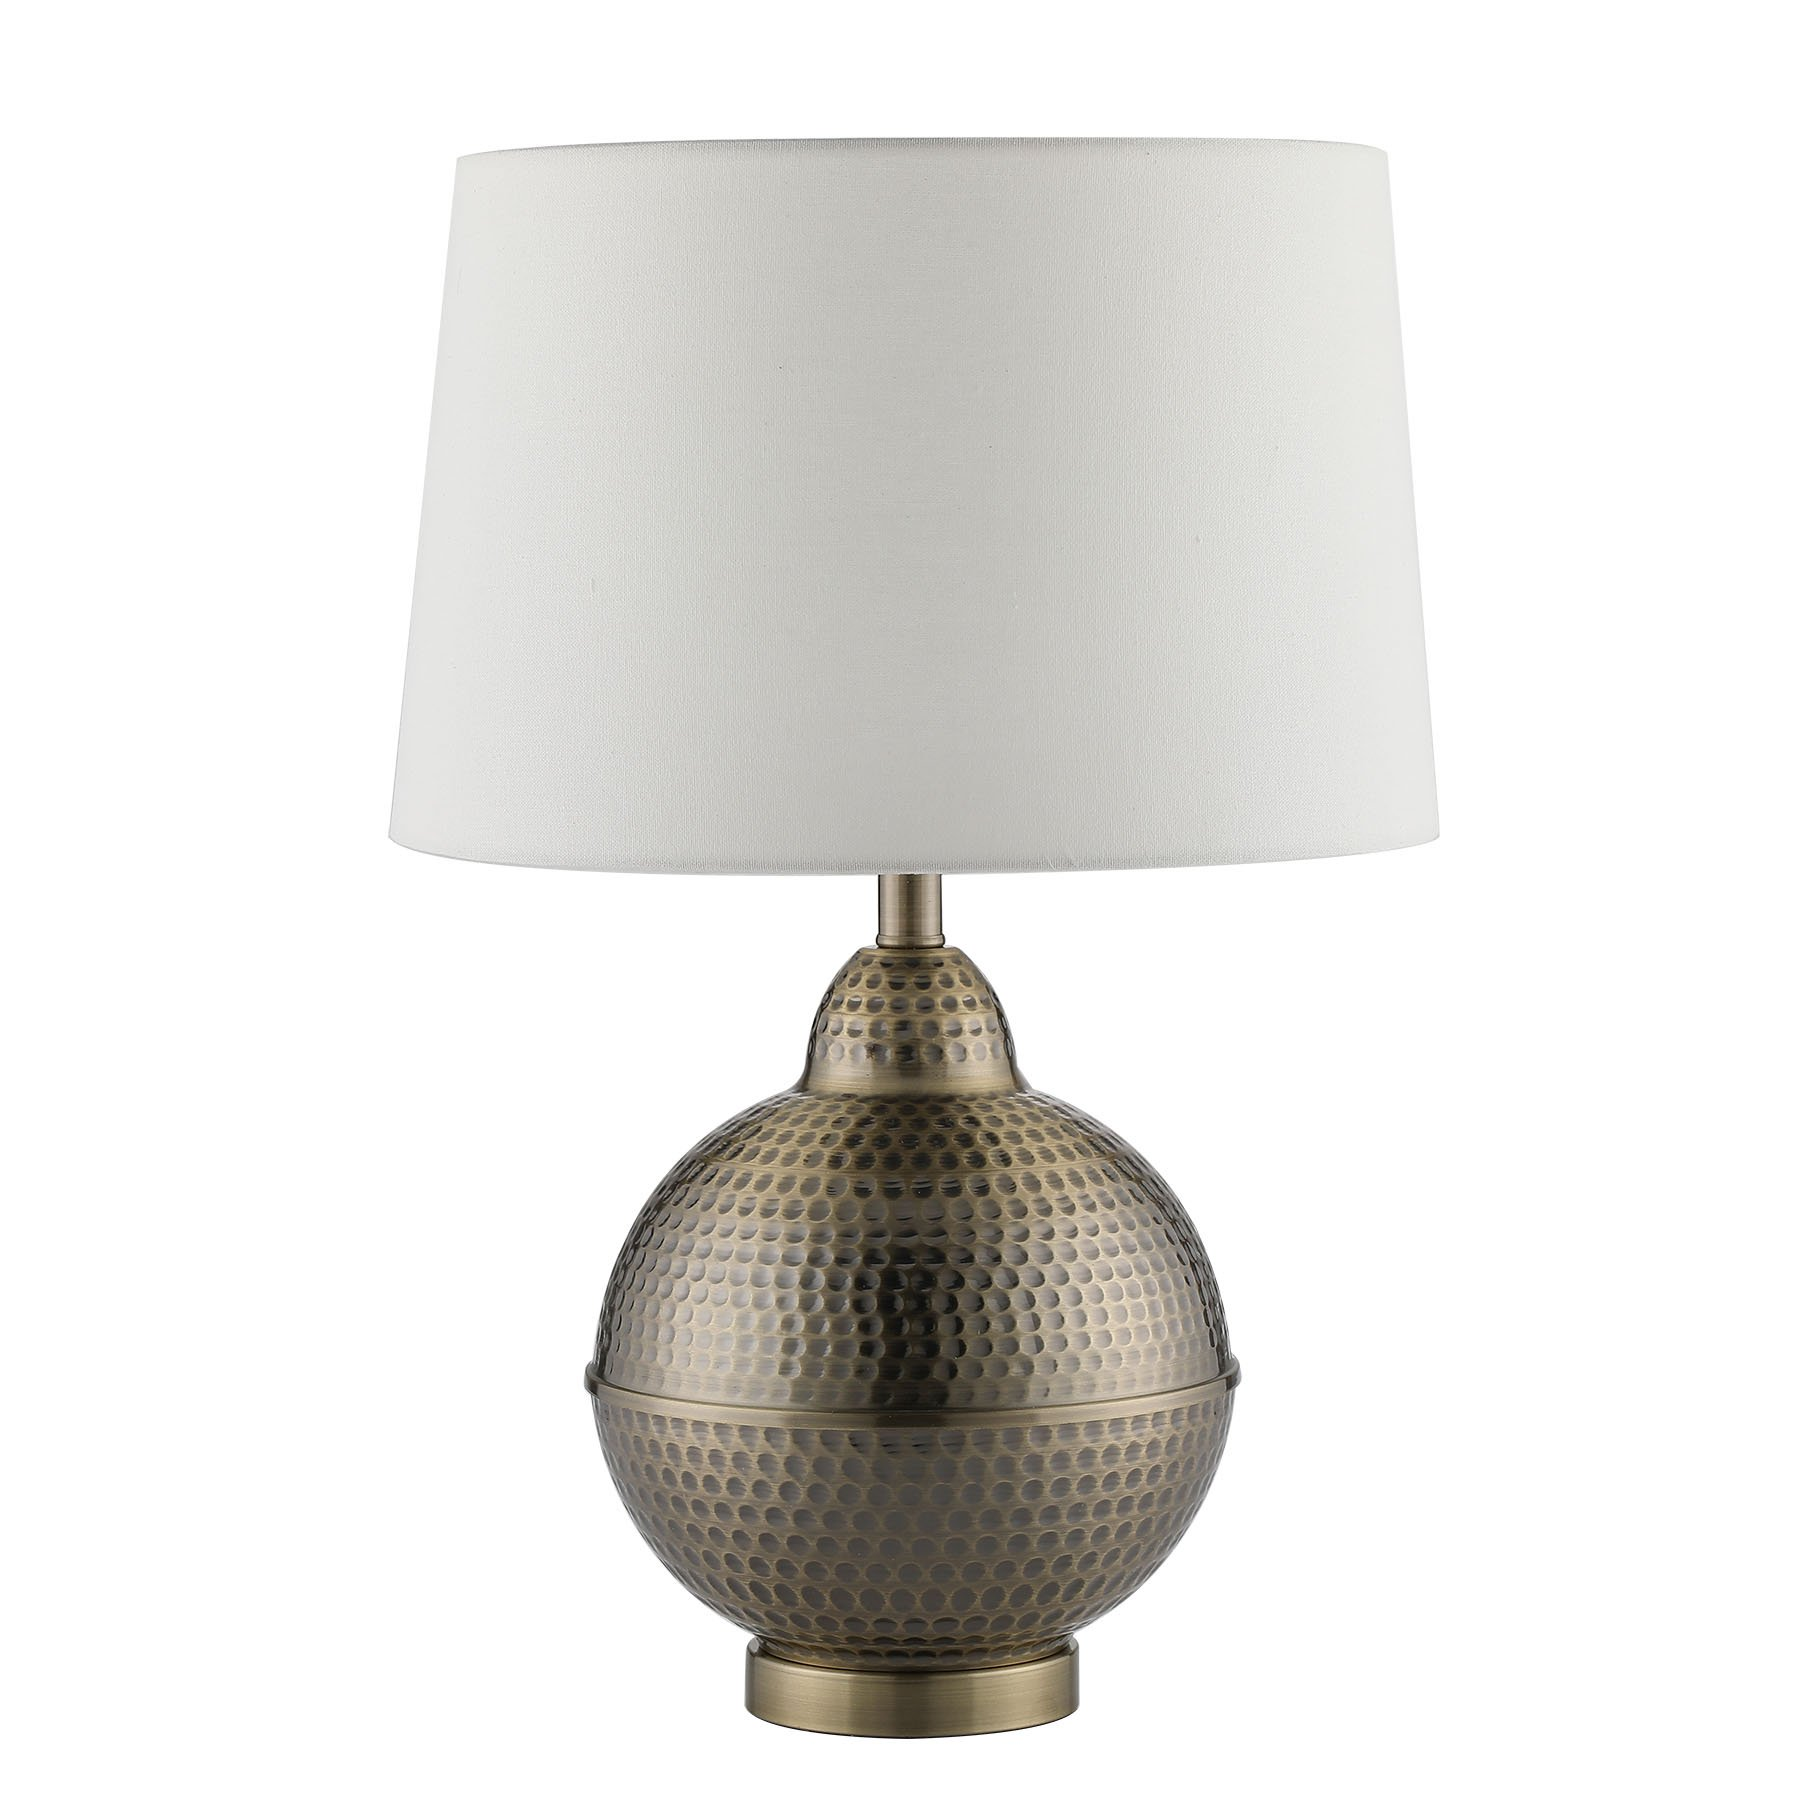 CO-Z Hammered Pot Table Lamps, Large Modern & Contemporary White Shade with Handcrafted Hammered Brass Base Desk Lamp for Living Room Bedroom Bedside Console